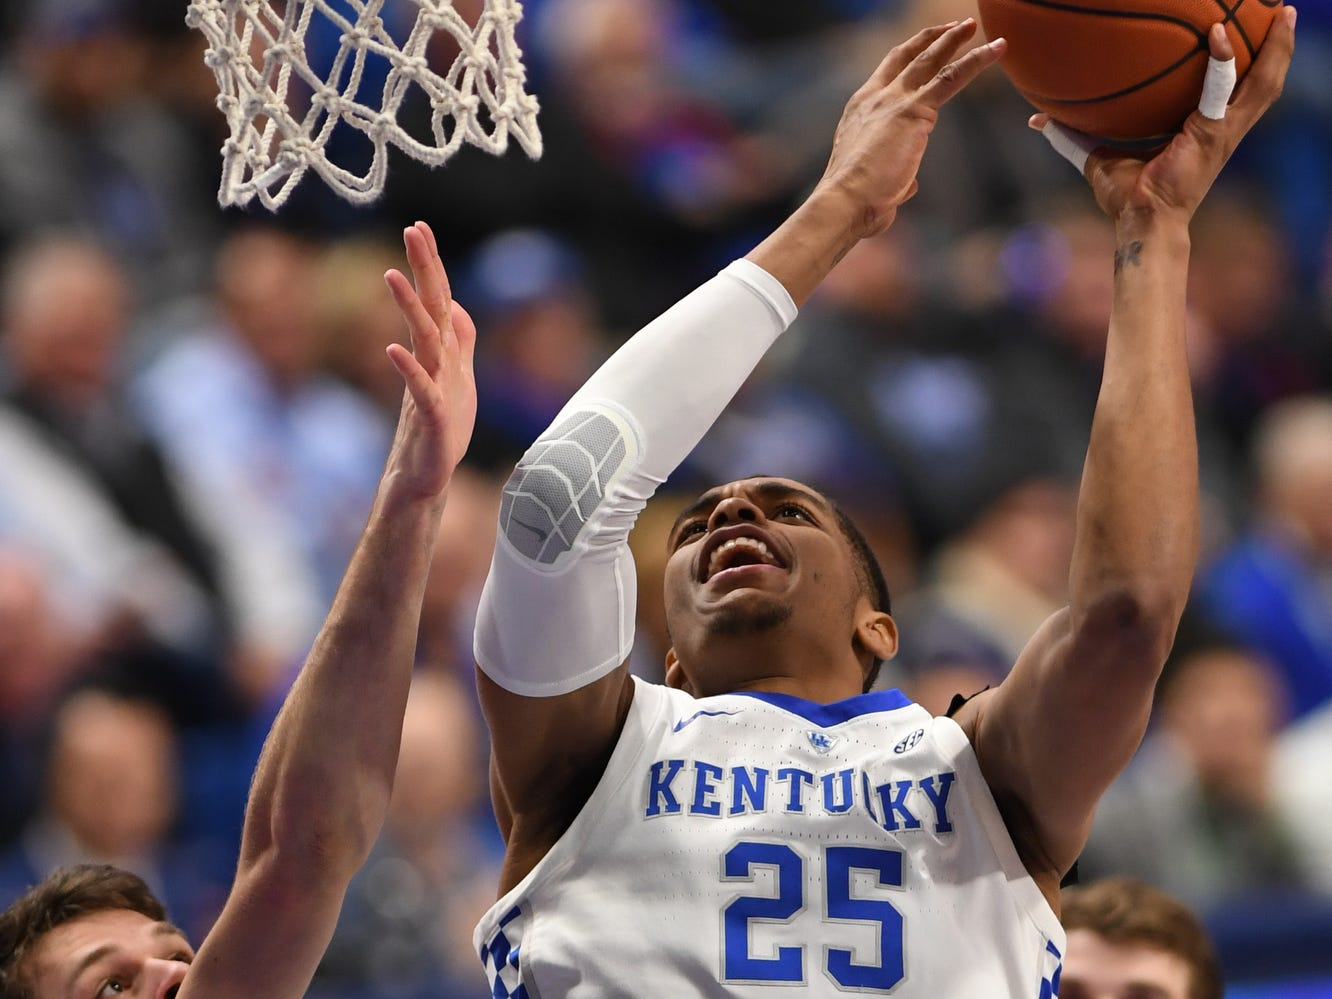 UK F PJ Washington goes up with the ball during the University of Kentucky mens basketball game against North Dakota at Rupp Arena in Lexington, Kentucky on Wednesday, November 14, 2018.